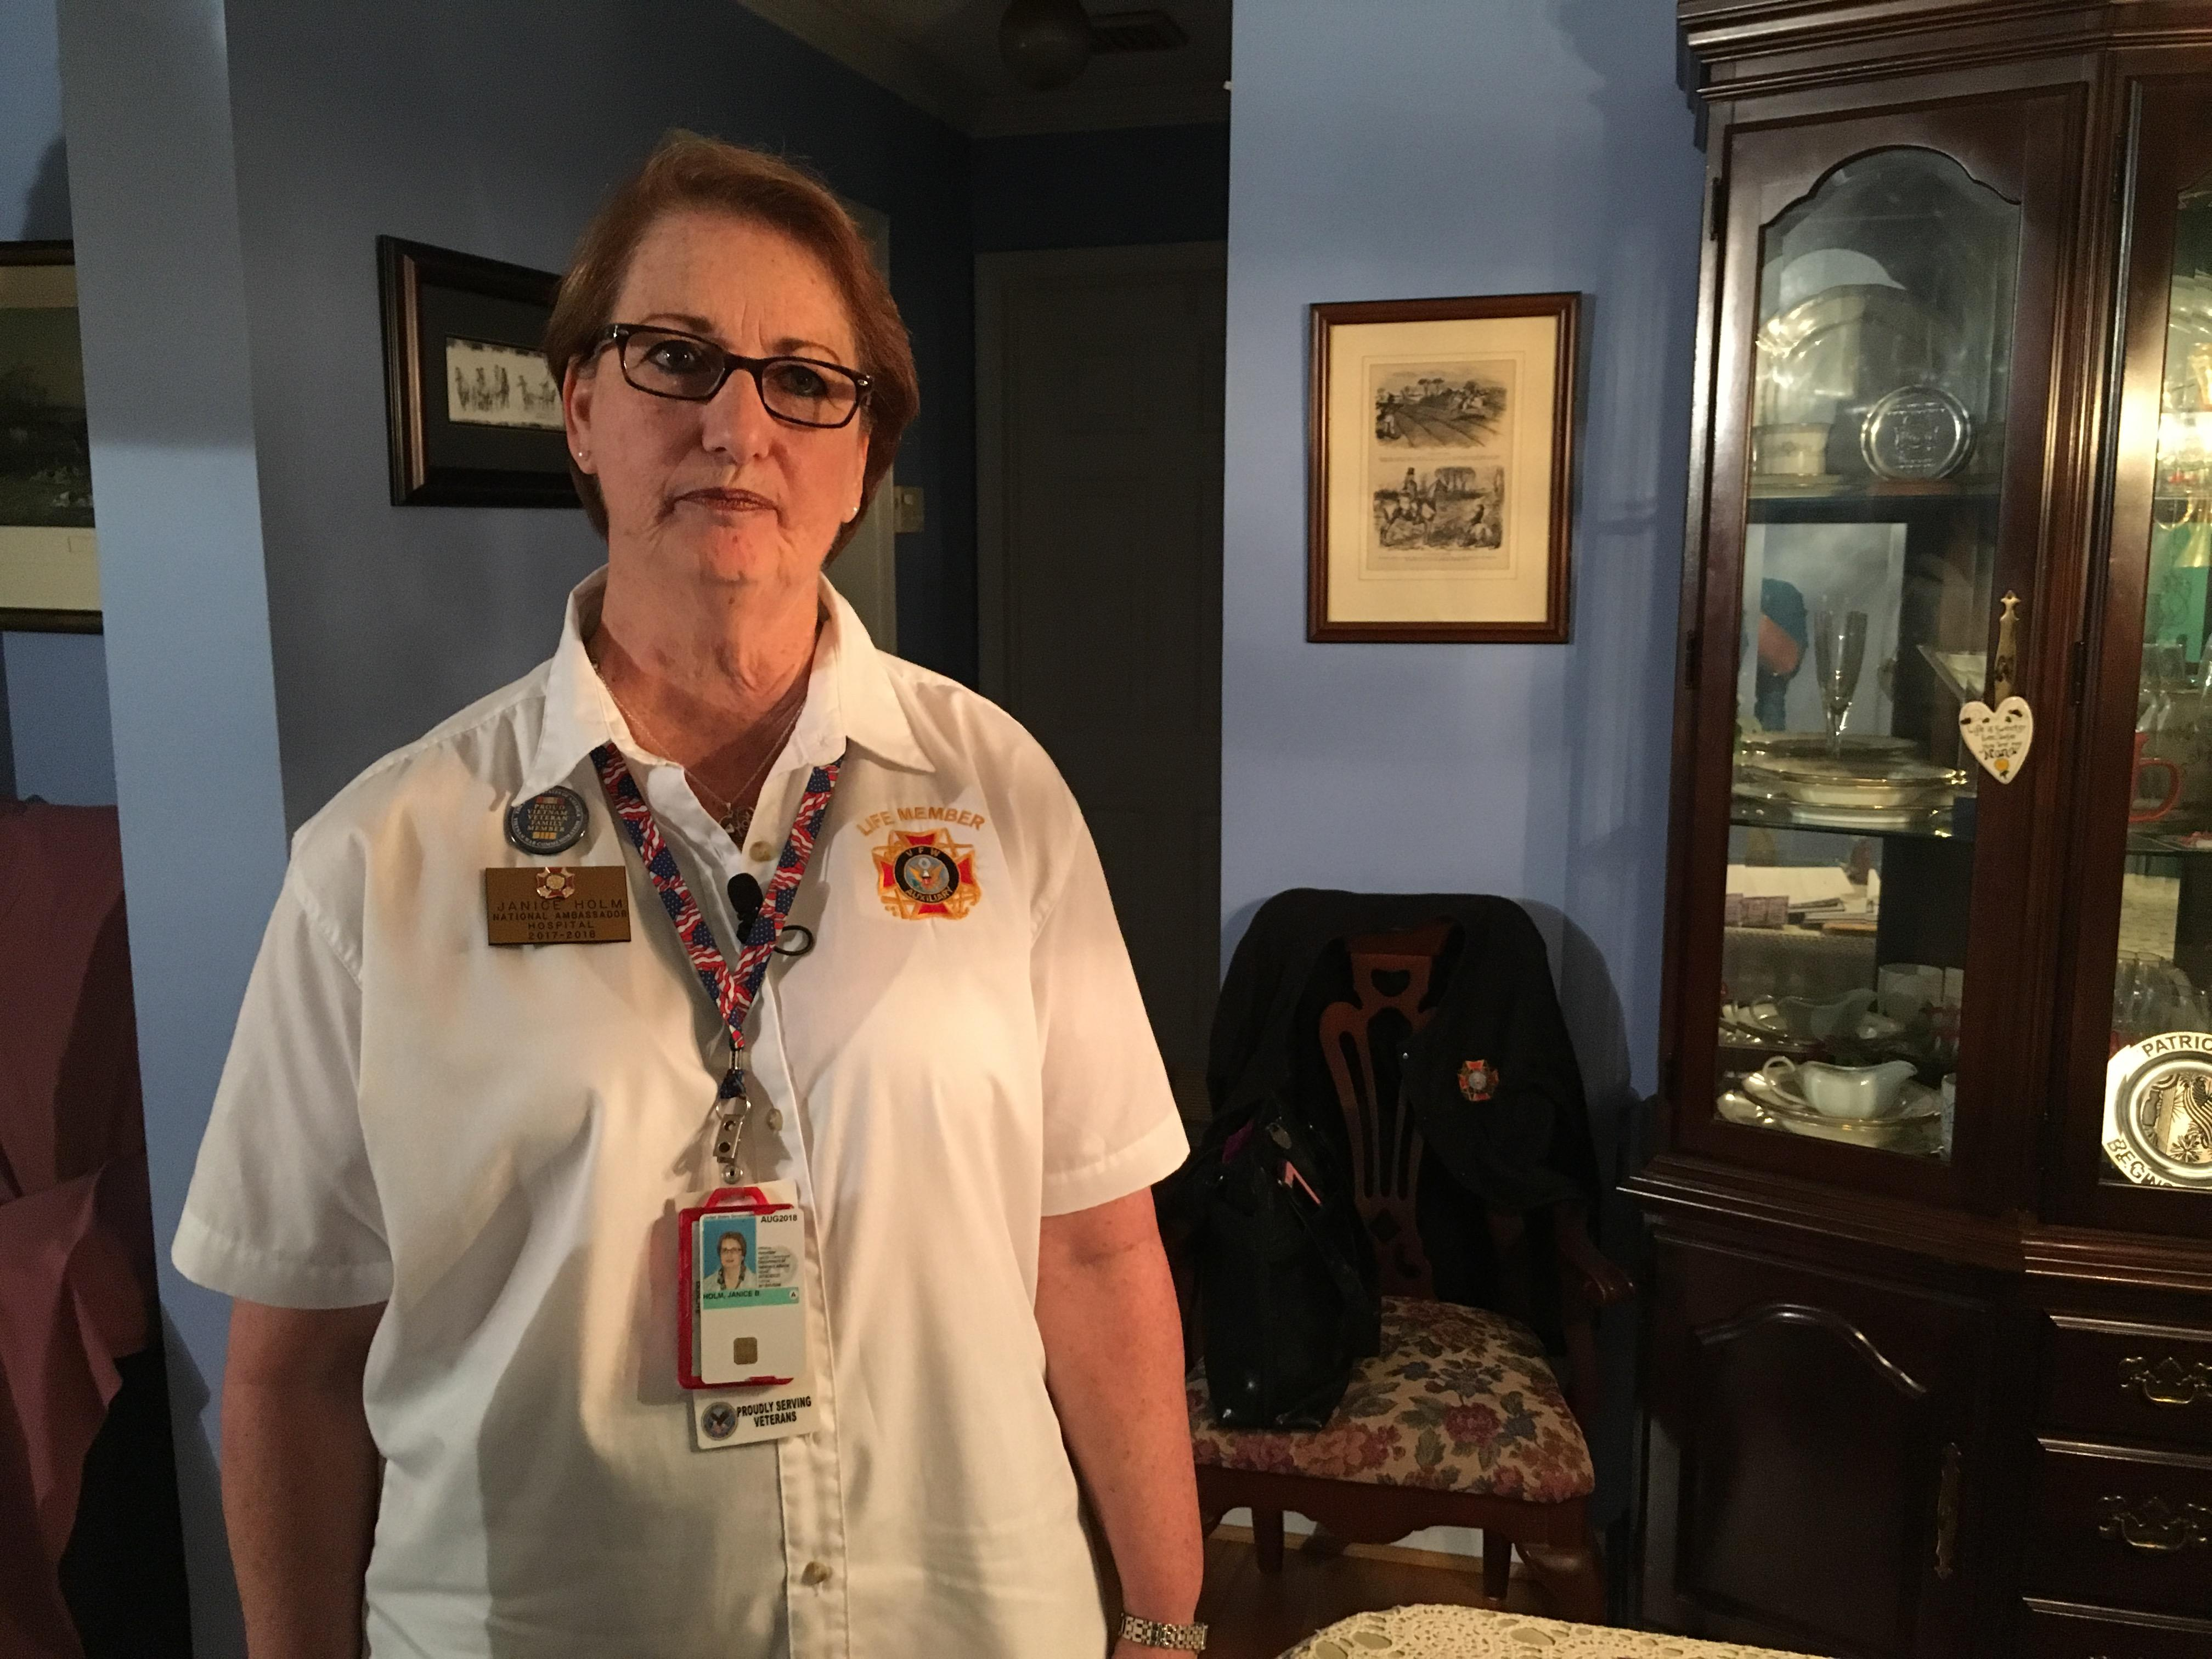 Janice Holm's a member of a number of veteran support organizations because her husband David is a Navy veteran. He has Stage 4 bone cancer. (Photo credit: WLOS staff)